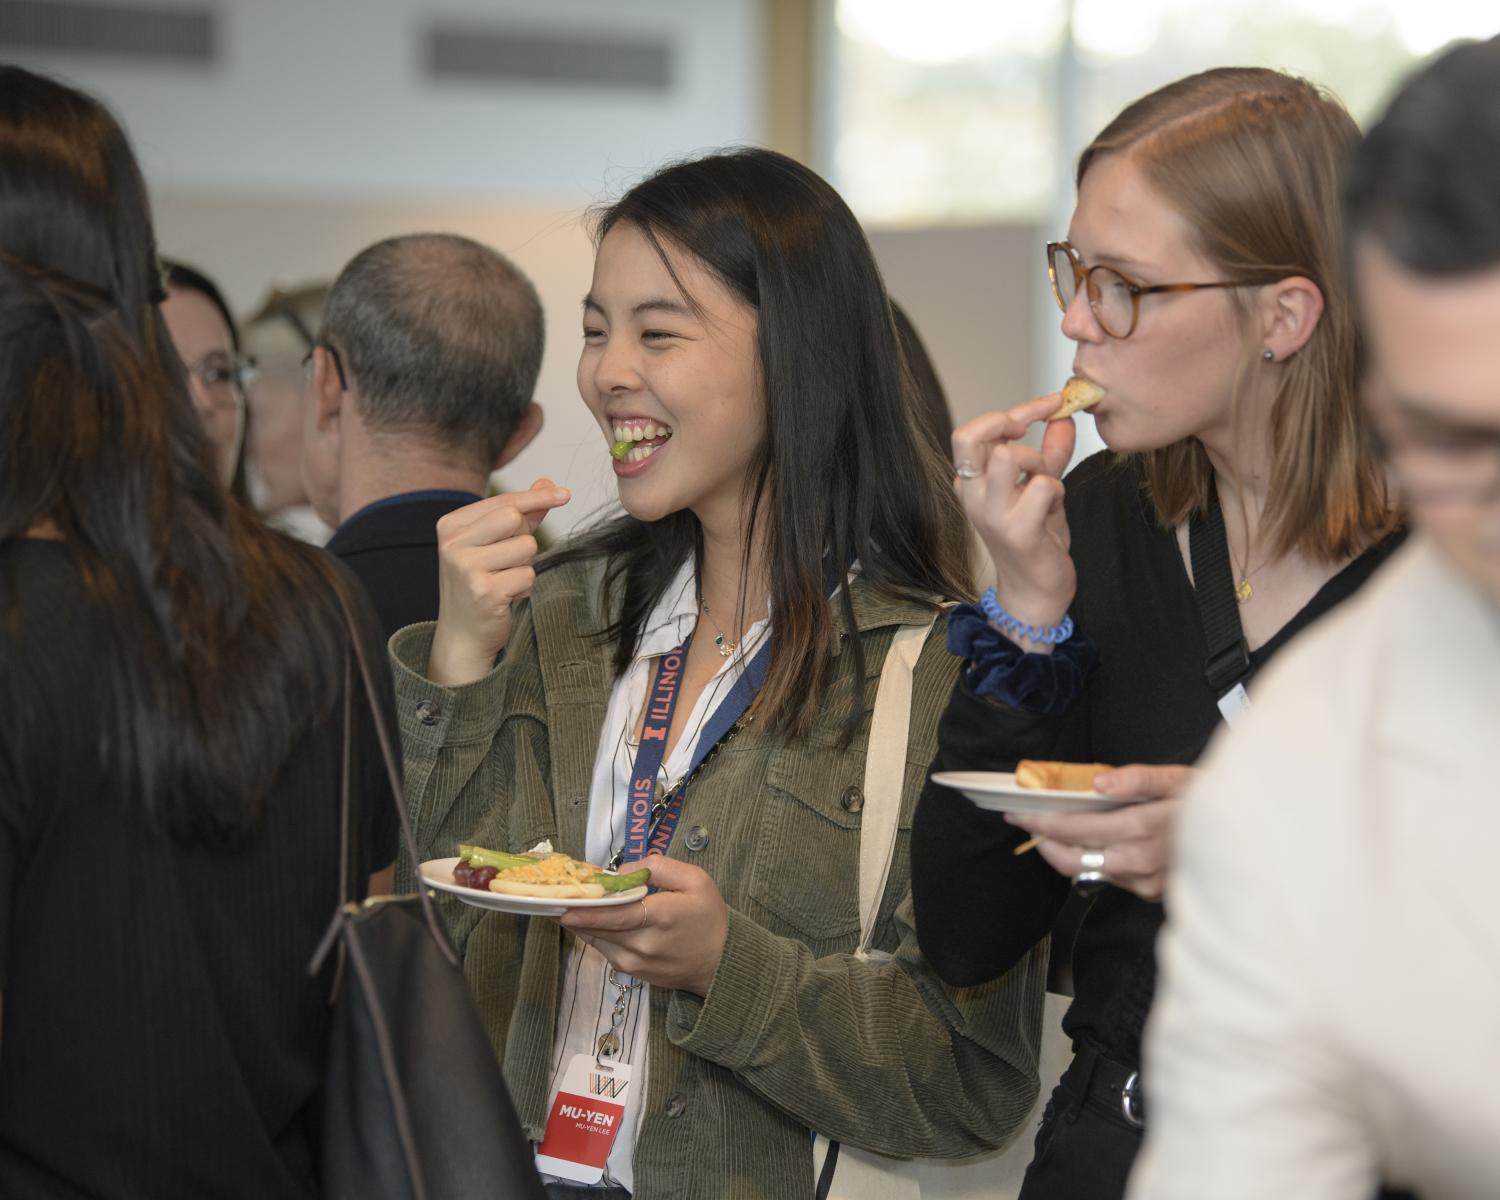 Two female students talking and eating at a museum reception. Theyare in a crowd